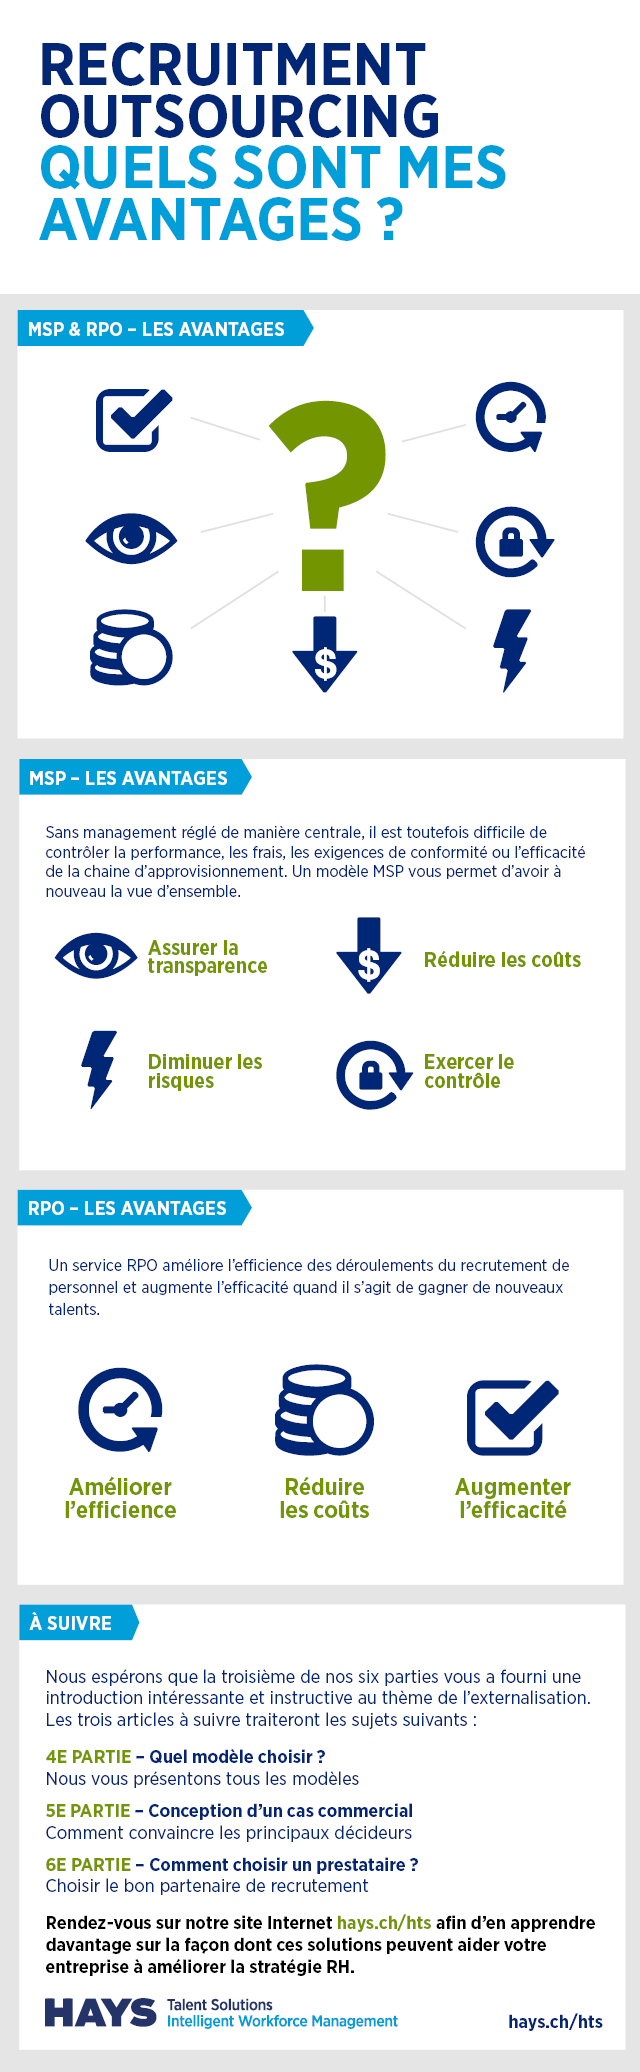 Recruitment Process Outsourcing - Le bénéfice